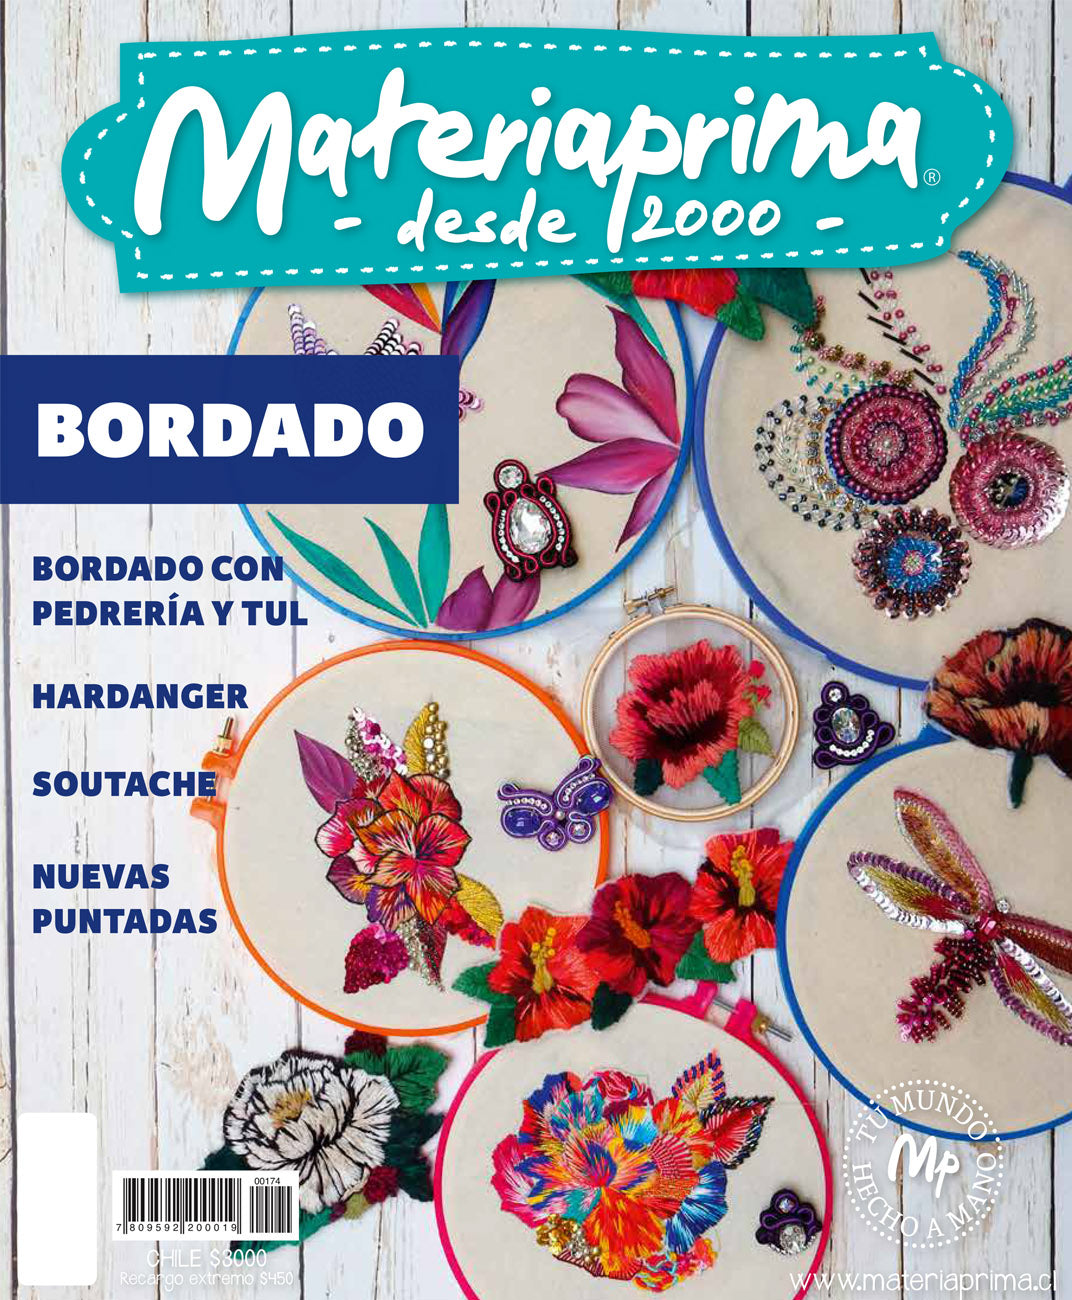 Revista Materiaprima 174 - Digital